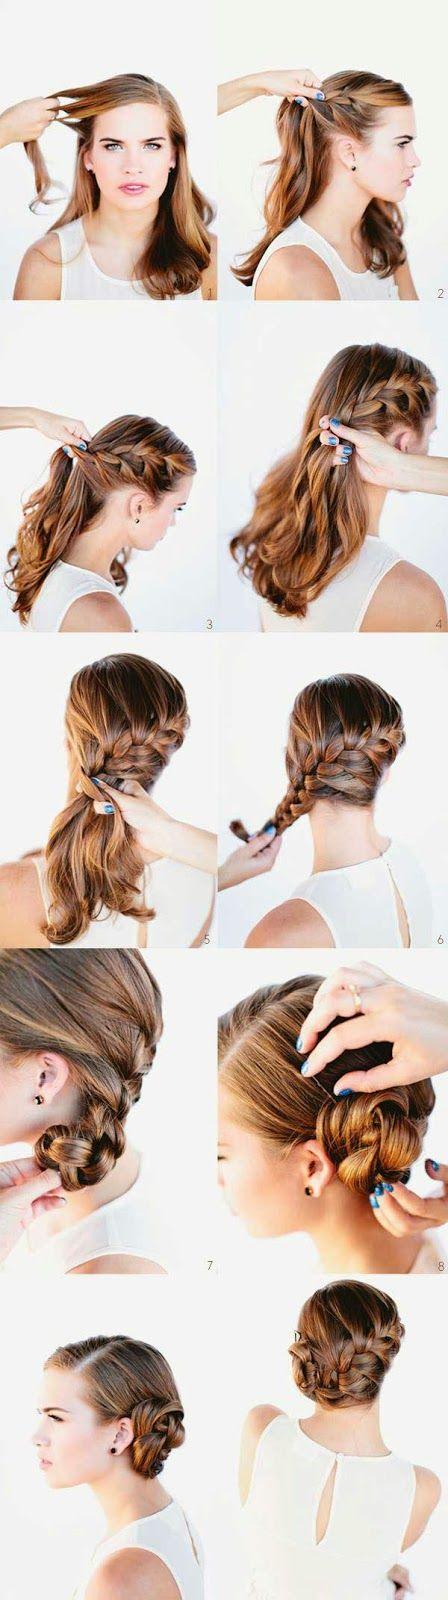 Pixiie.net Blog: Do It Yourself Fashionable Hairstyles